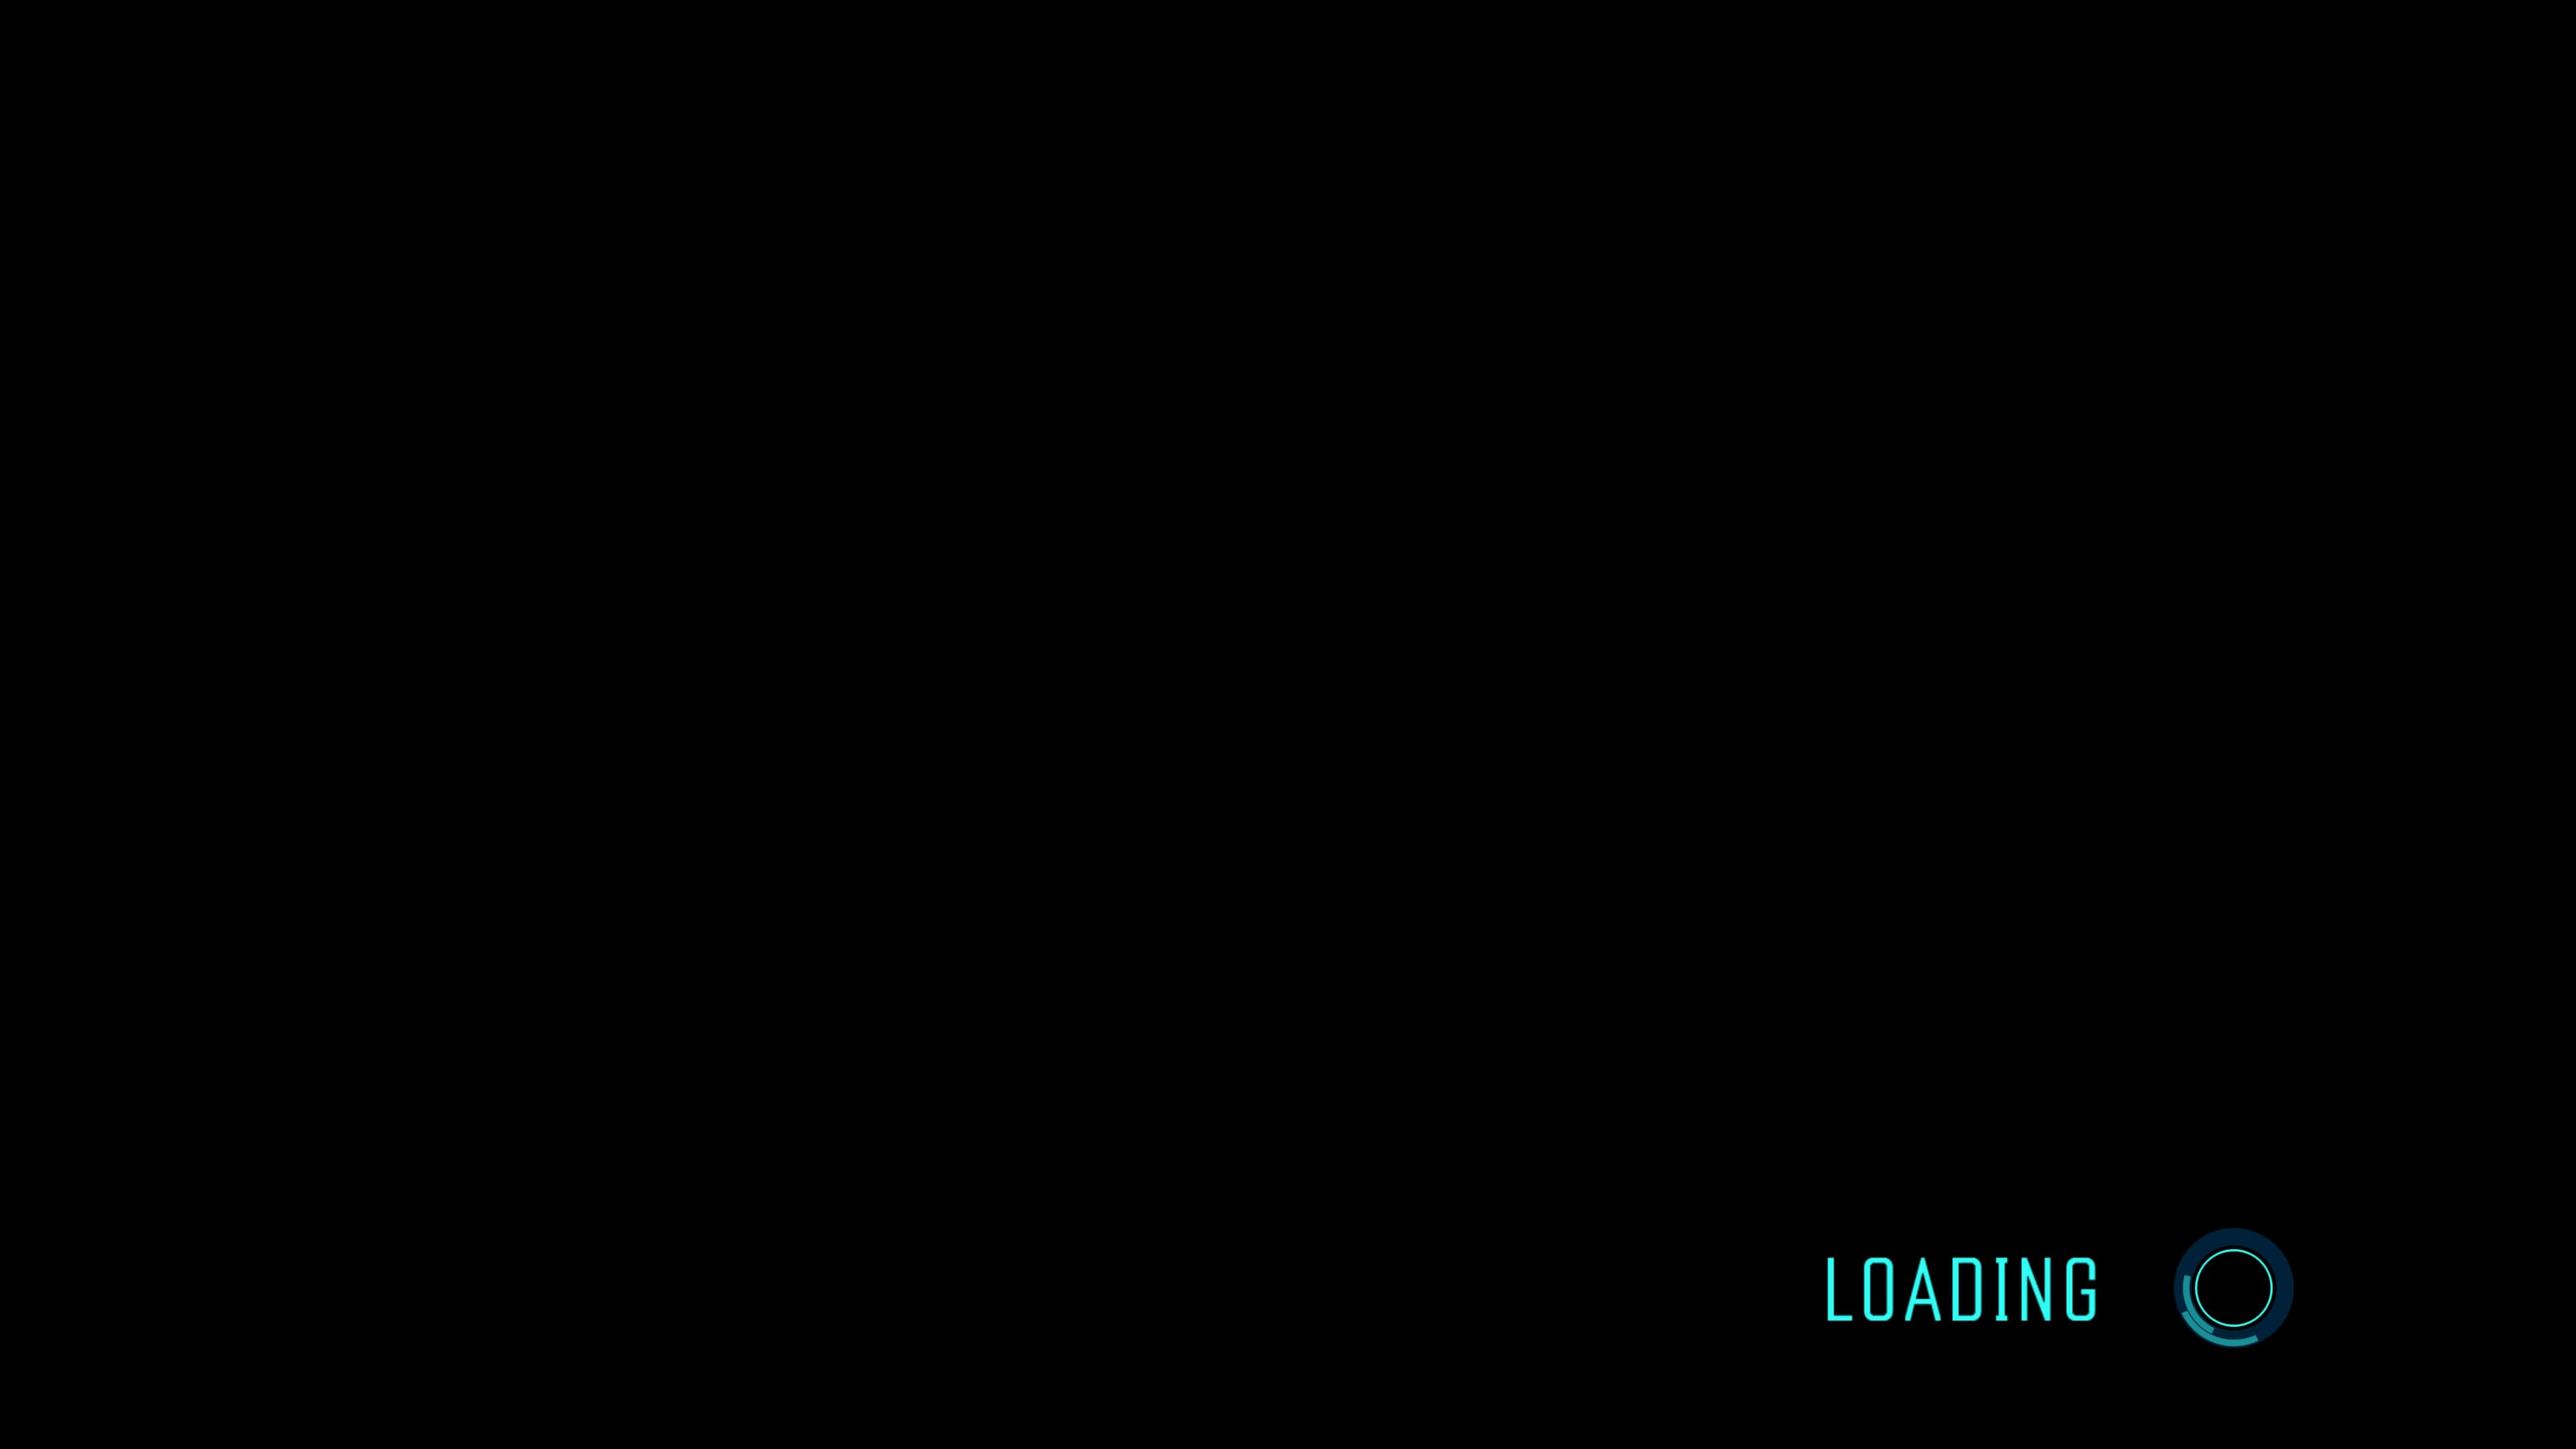 South Park The Fractured But Whole Loading Screen